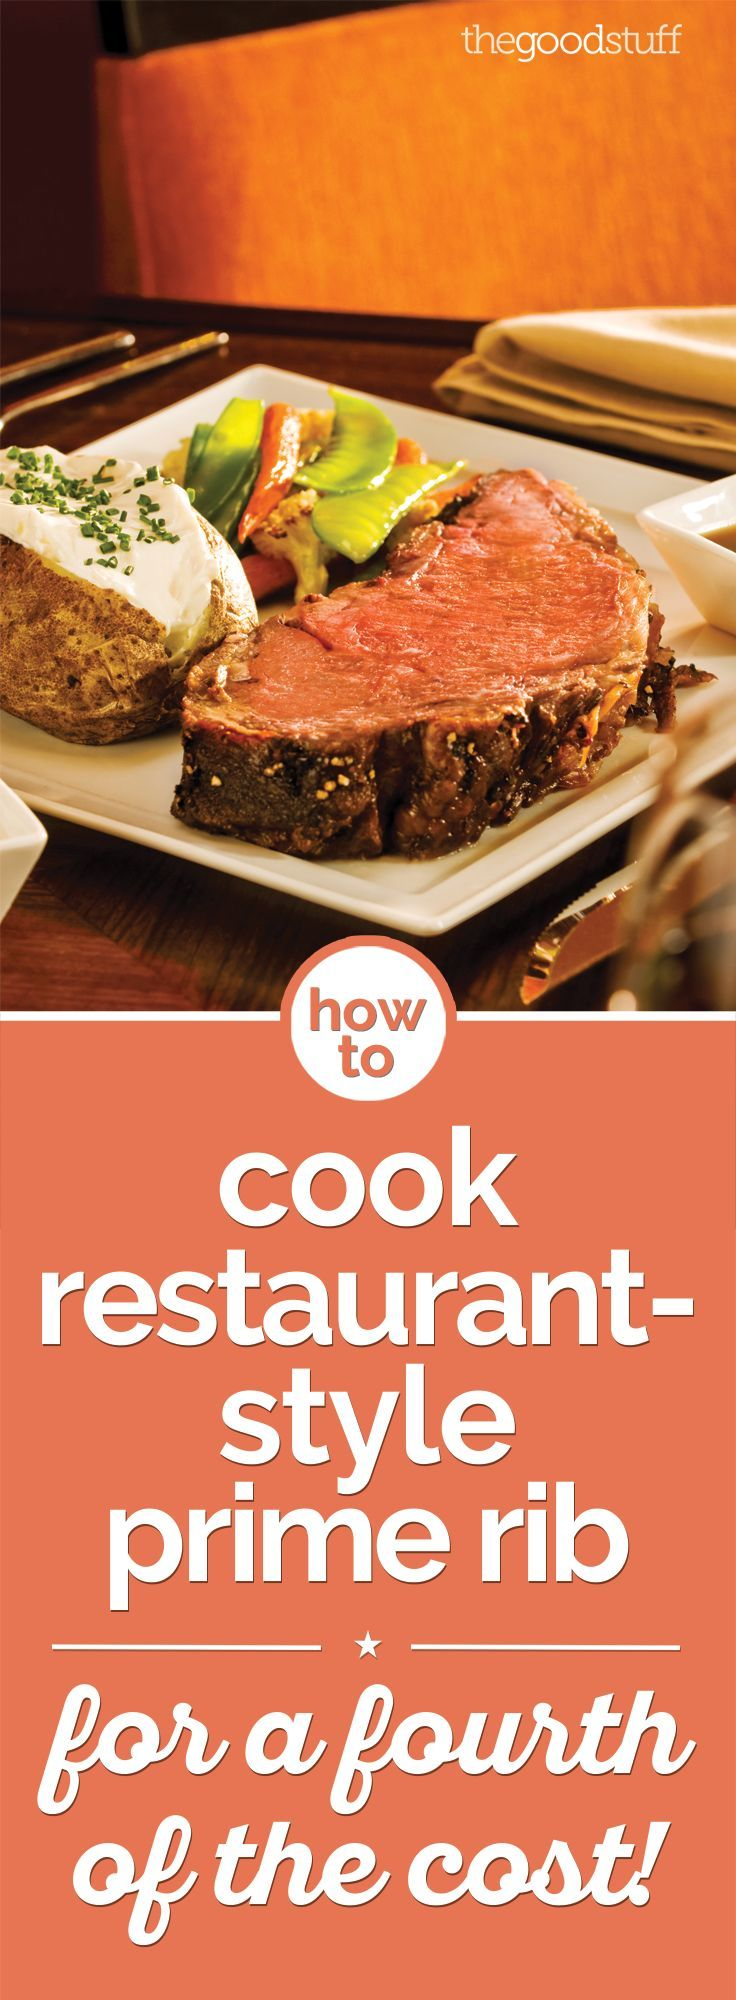 How to Cook Restaurant-Style Prime Rib for a Fourth of the Cost! - thegoodstuff